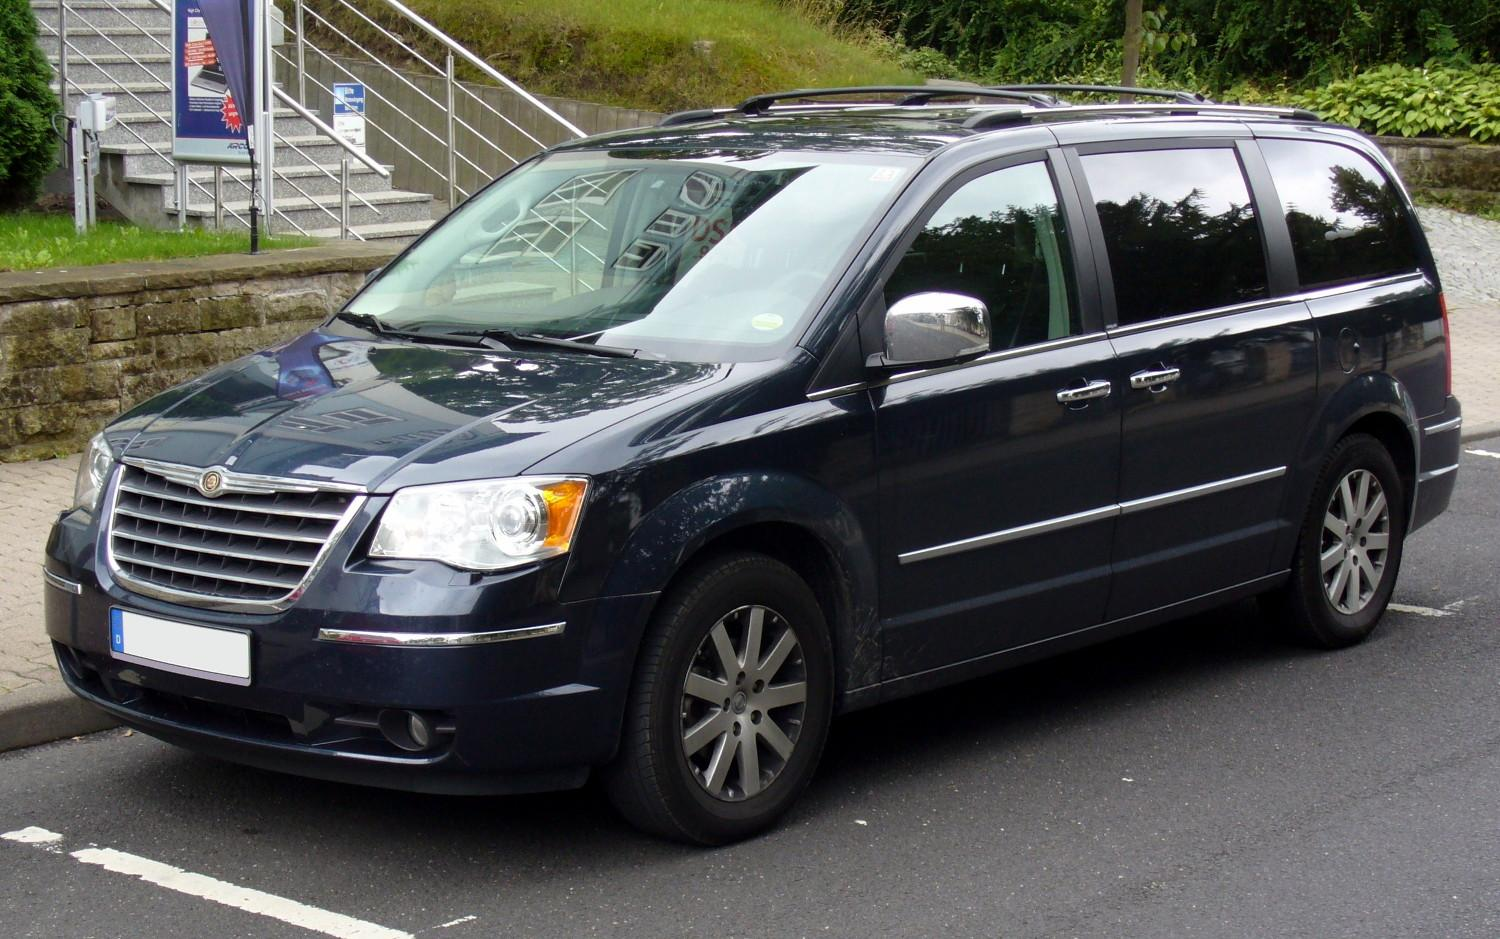 fichier chrysler grand voyager crd jpg wikip dia. Black Bedroom Furniture Sets. Home Design Ideas